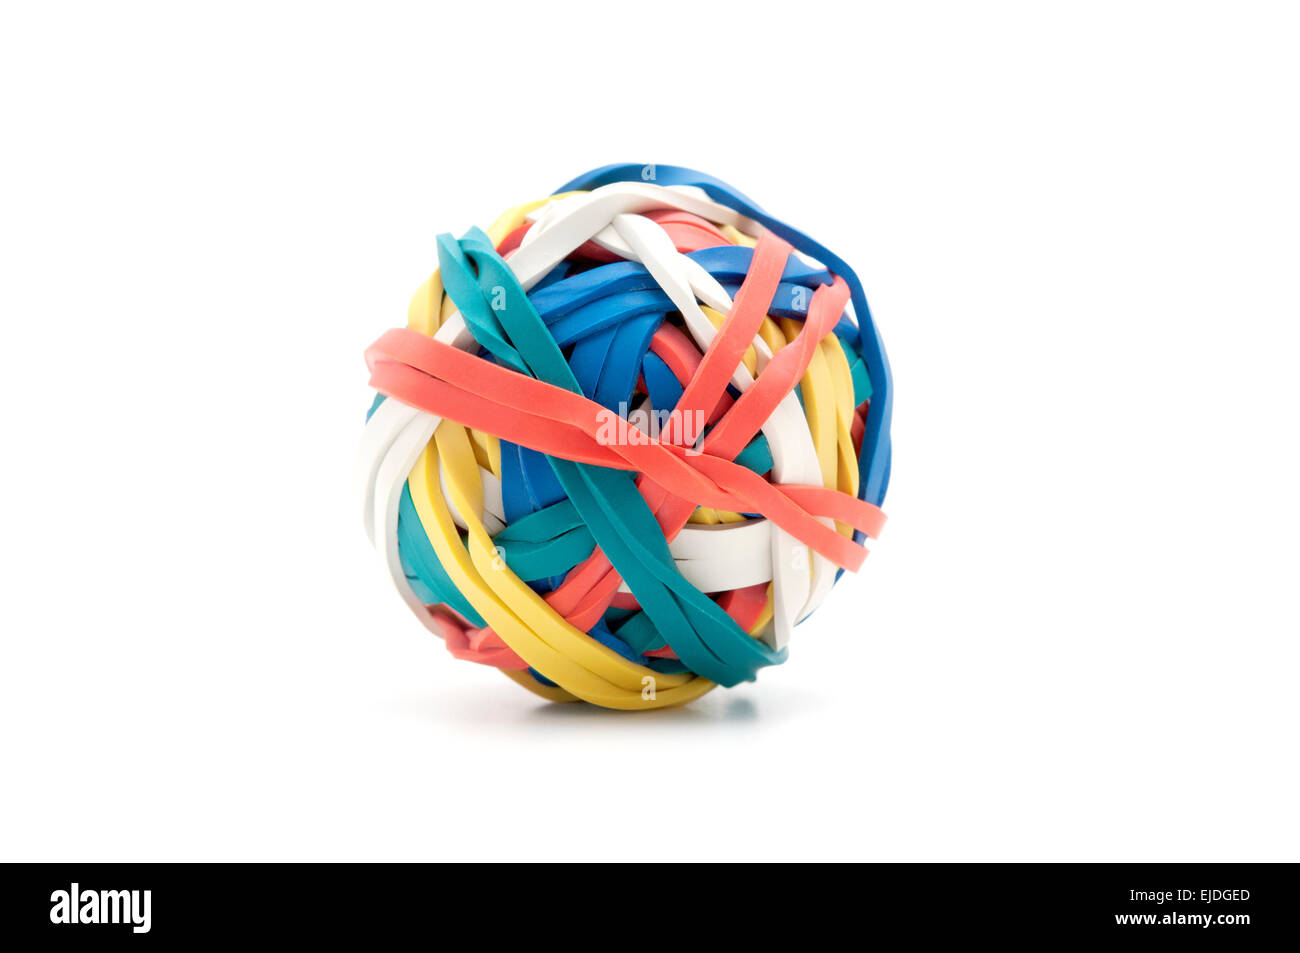 Ball of rubber bands on a white background - Stock Image